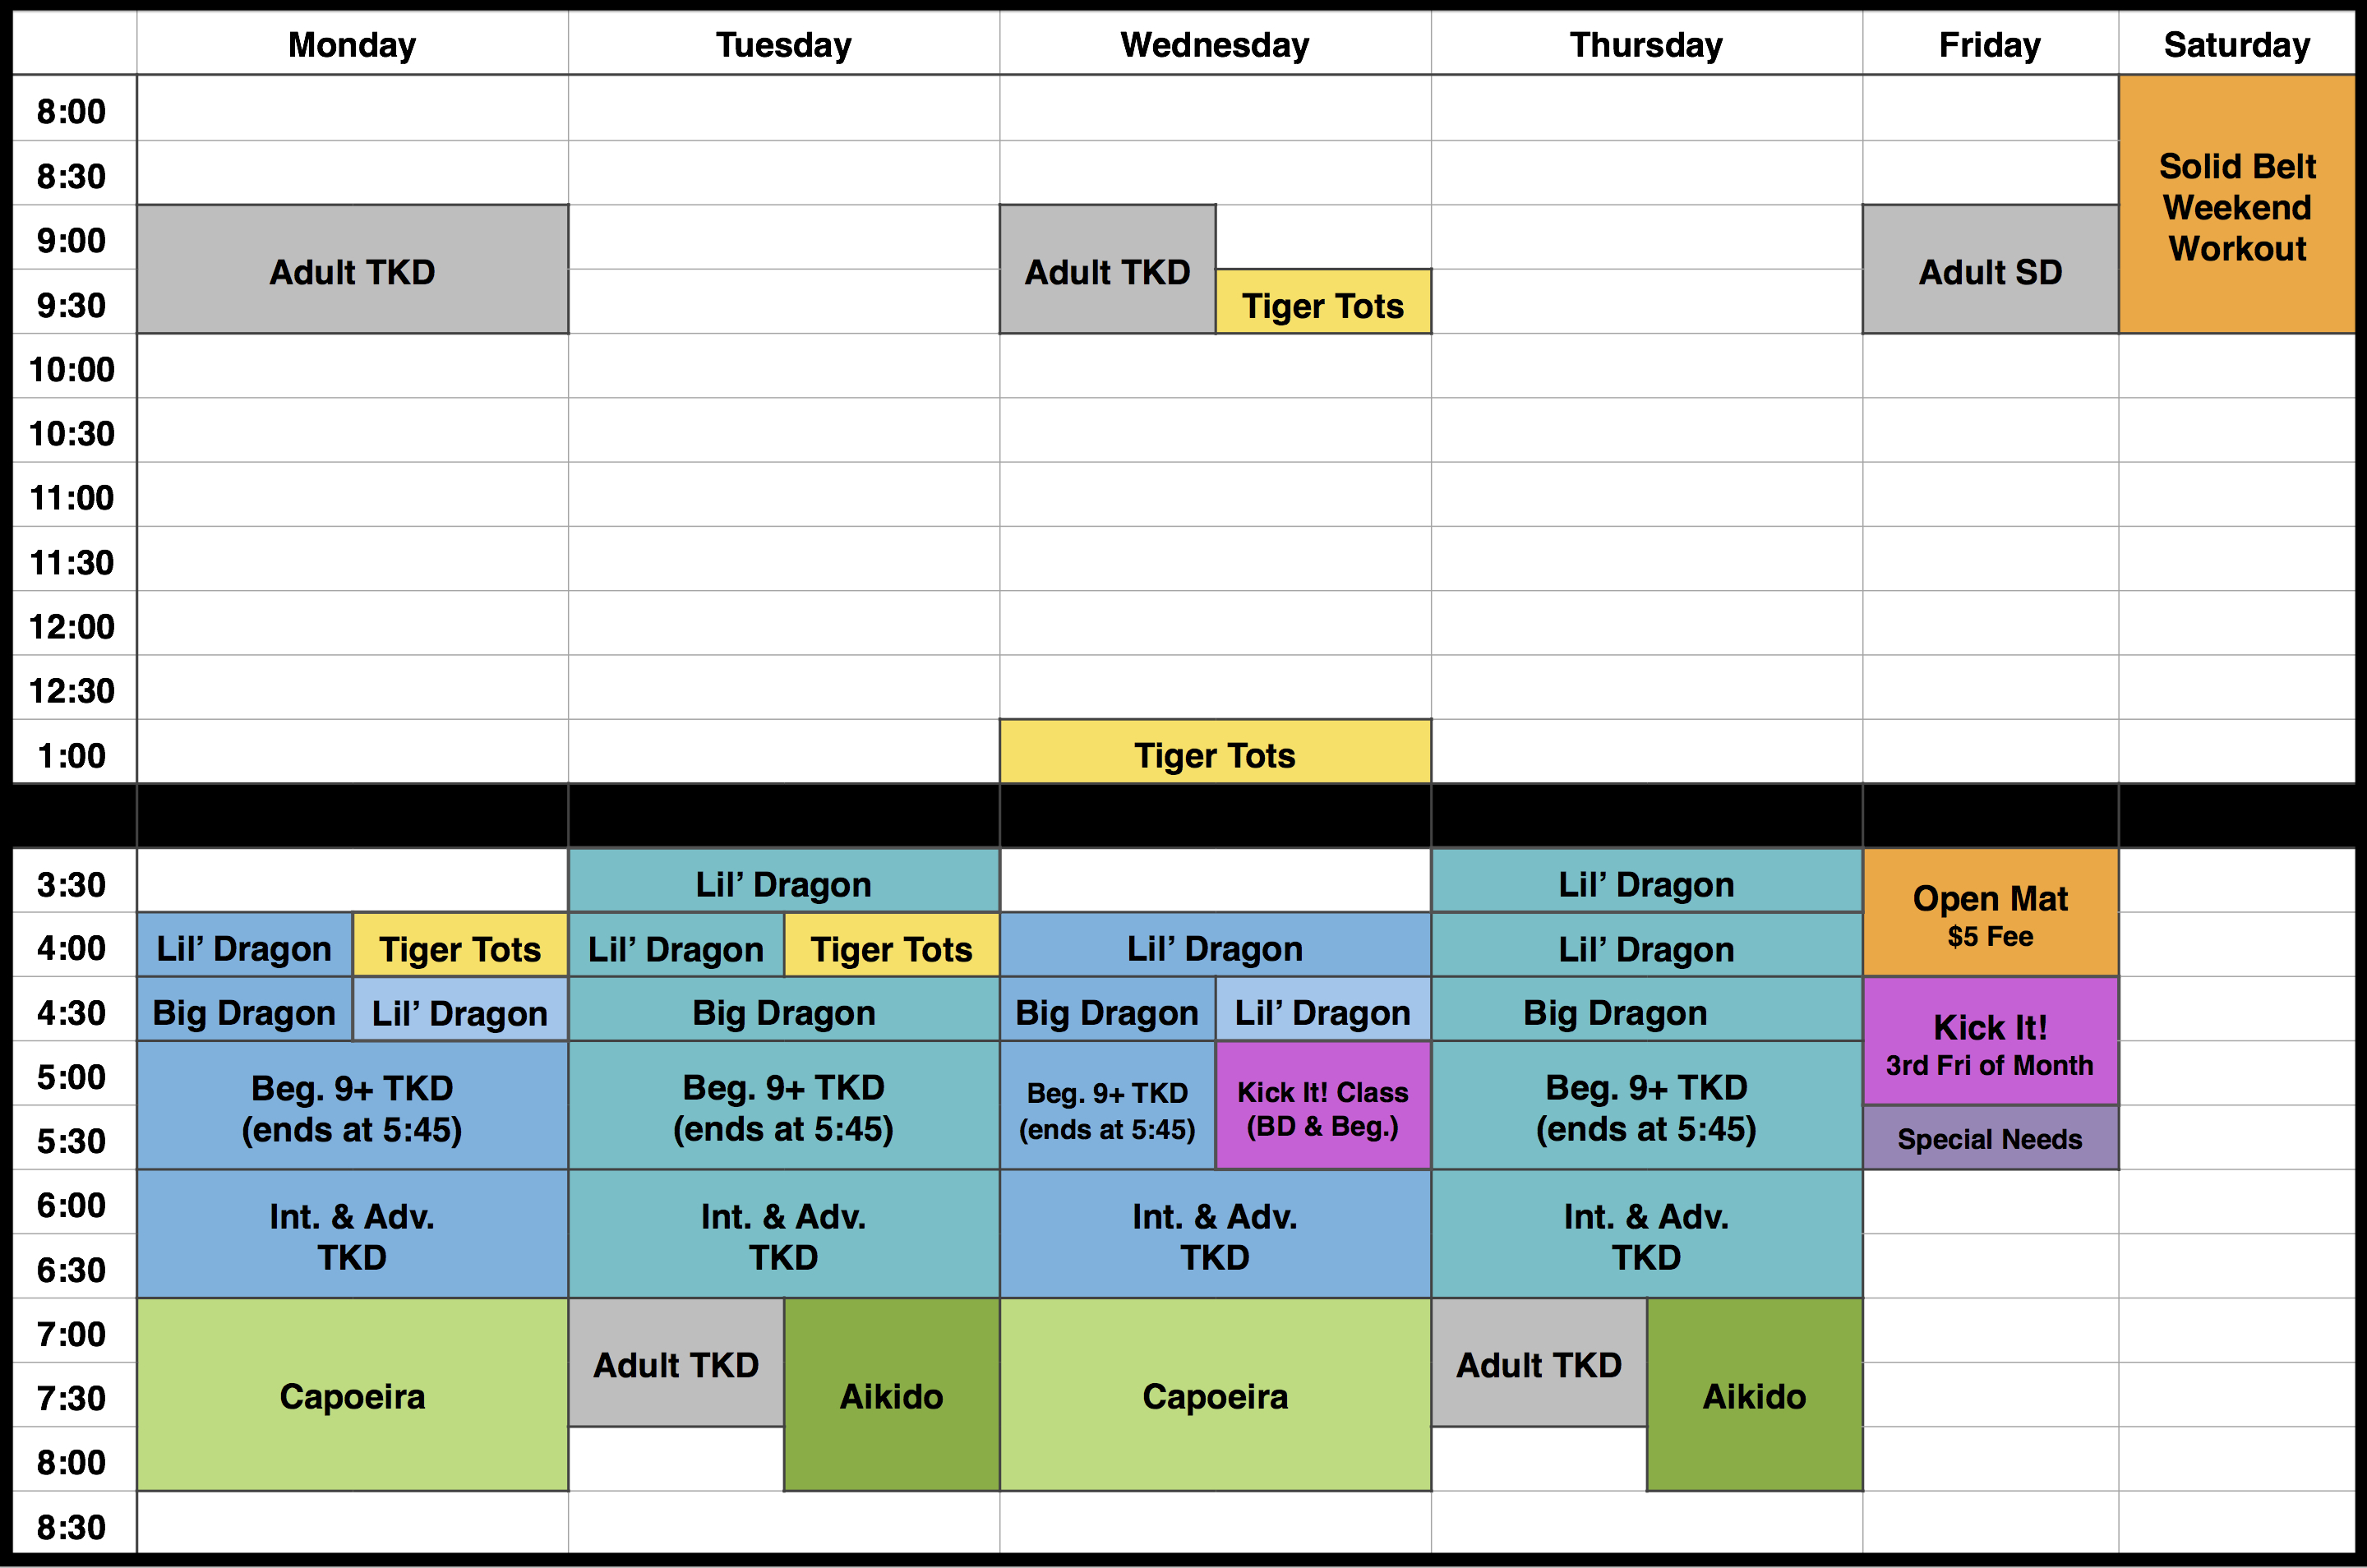 Spring '14 MA schedule Updated